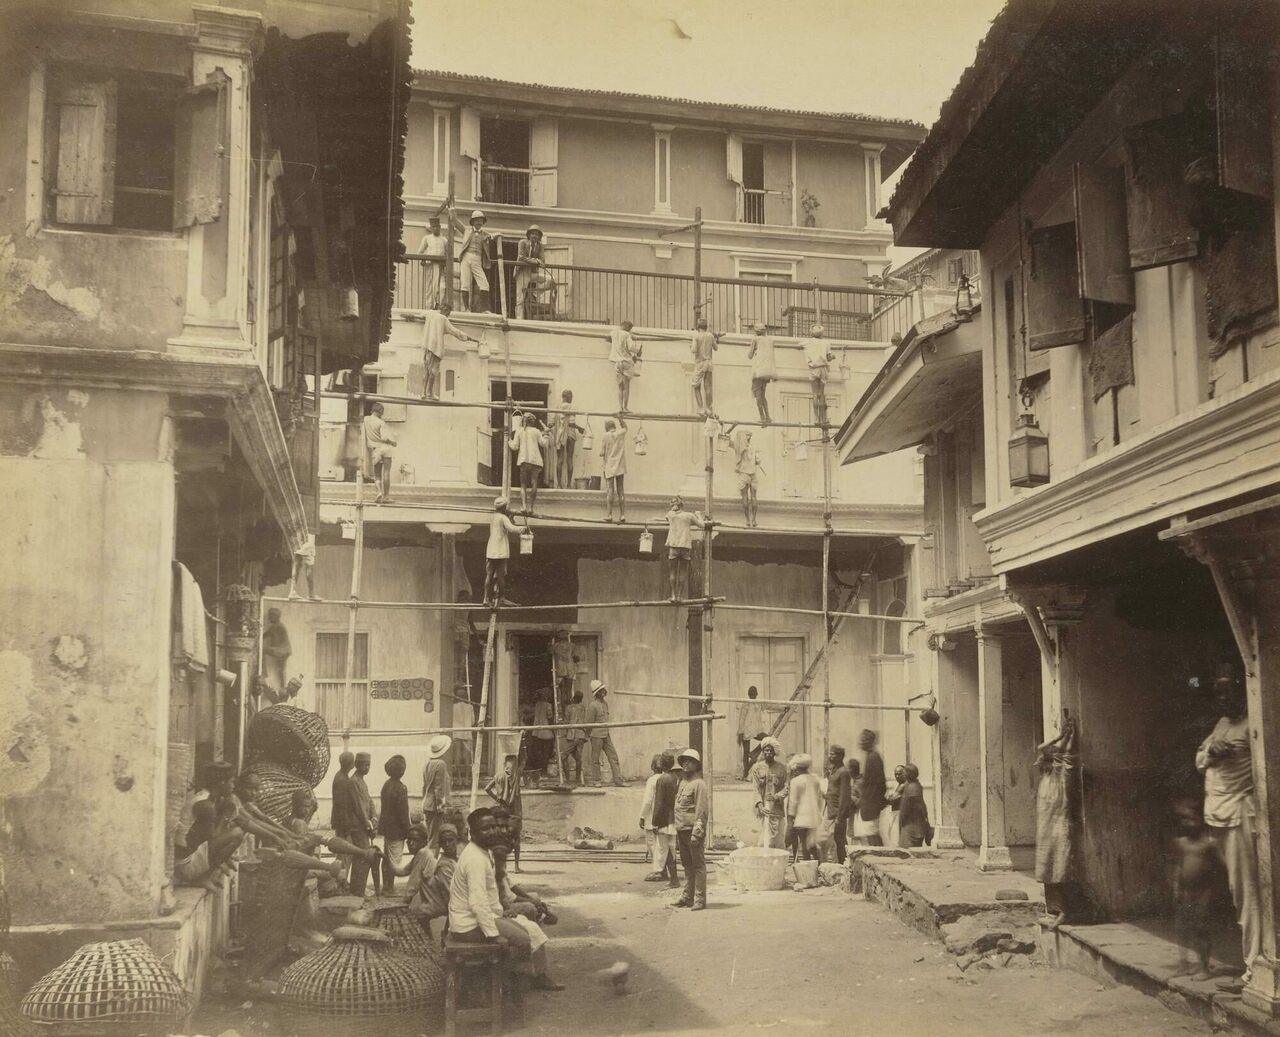 Workers clean a house in a neighborhood affected by the 1896 bubonic plague.